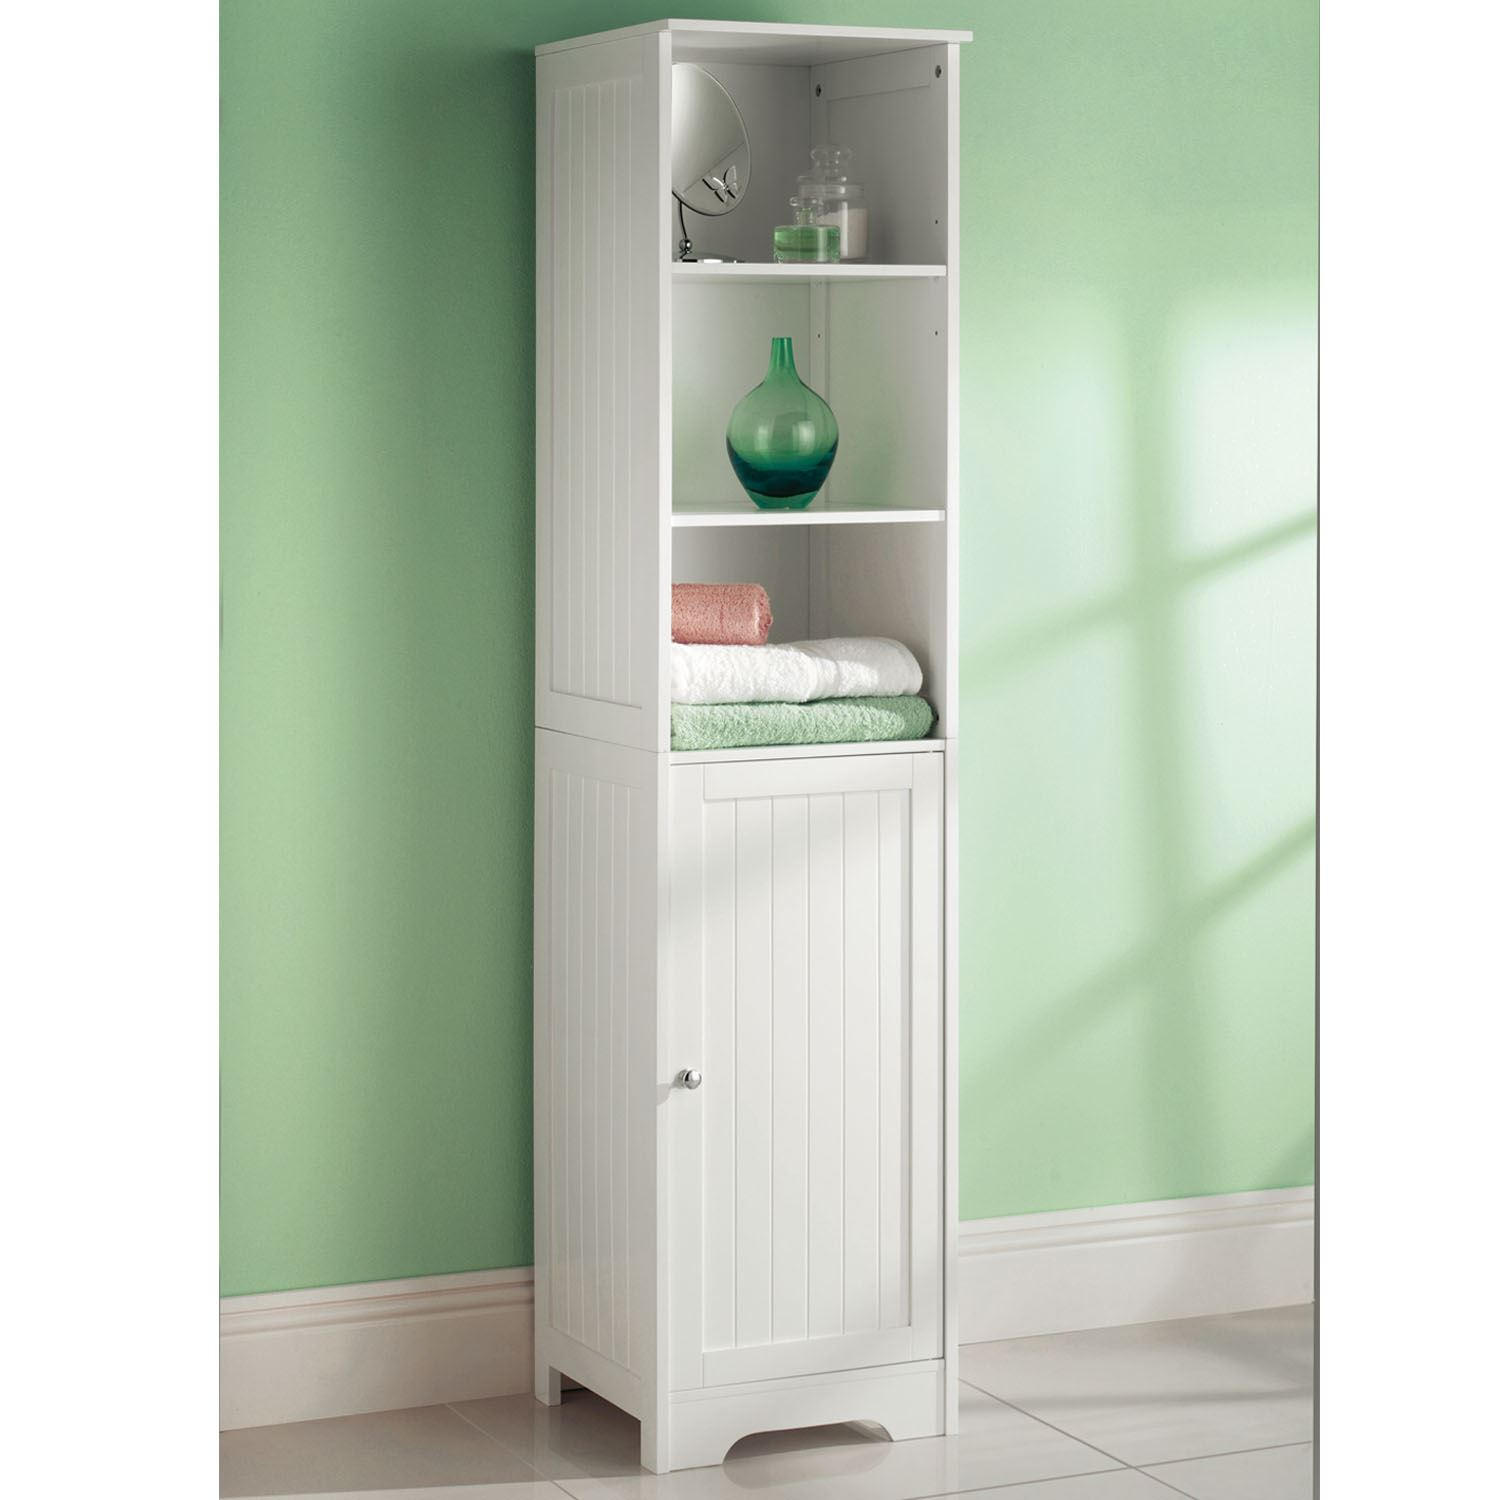 Elegant  White Gloss Bathroom Furniture Cabinet Storage Unit MF819  EBay